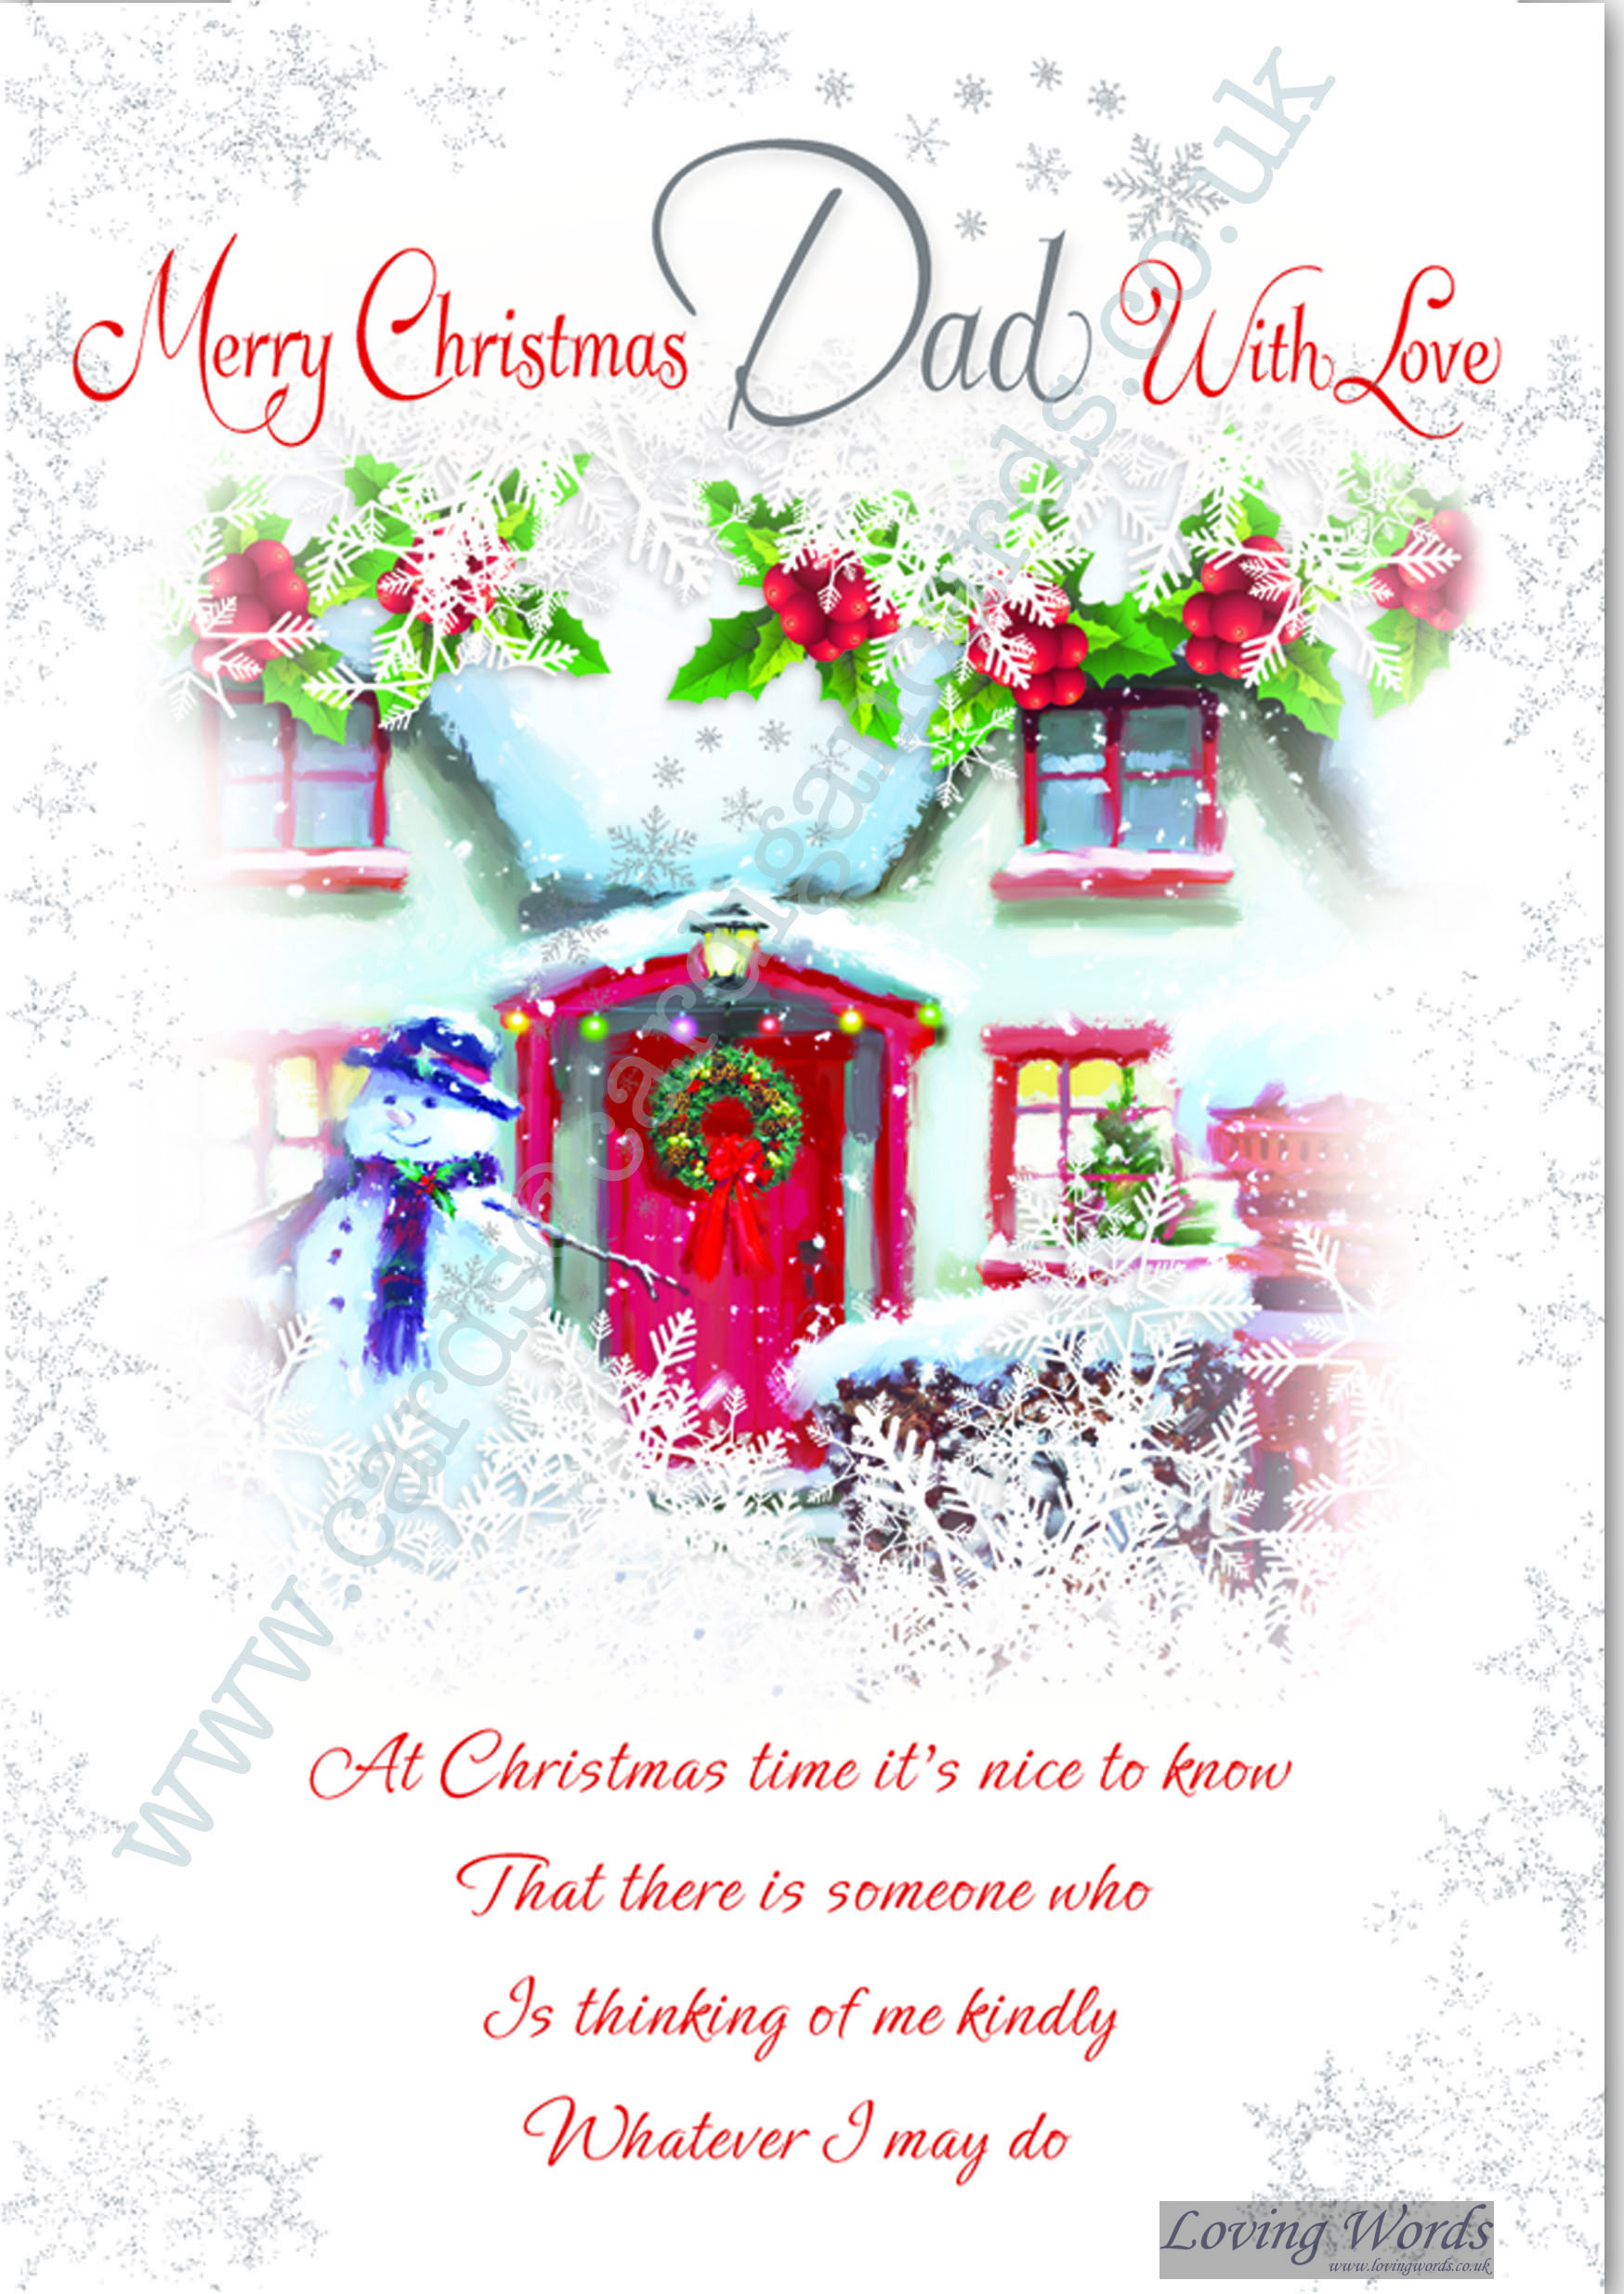 Merry Christmas Dad With Love Greeting Cards By Loving Words